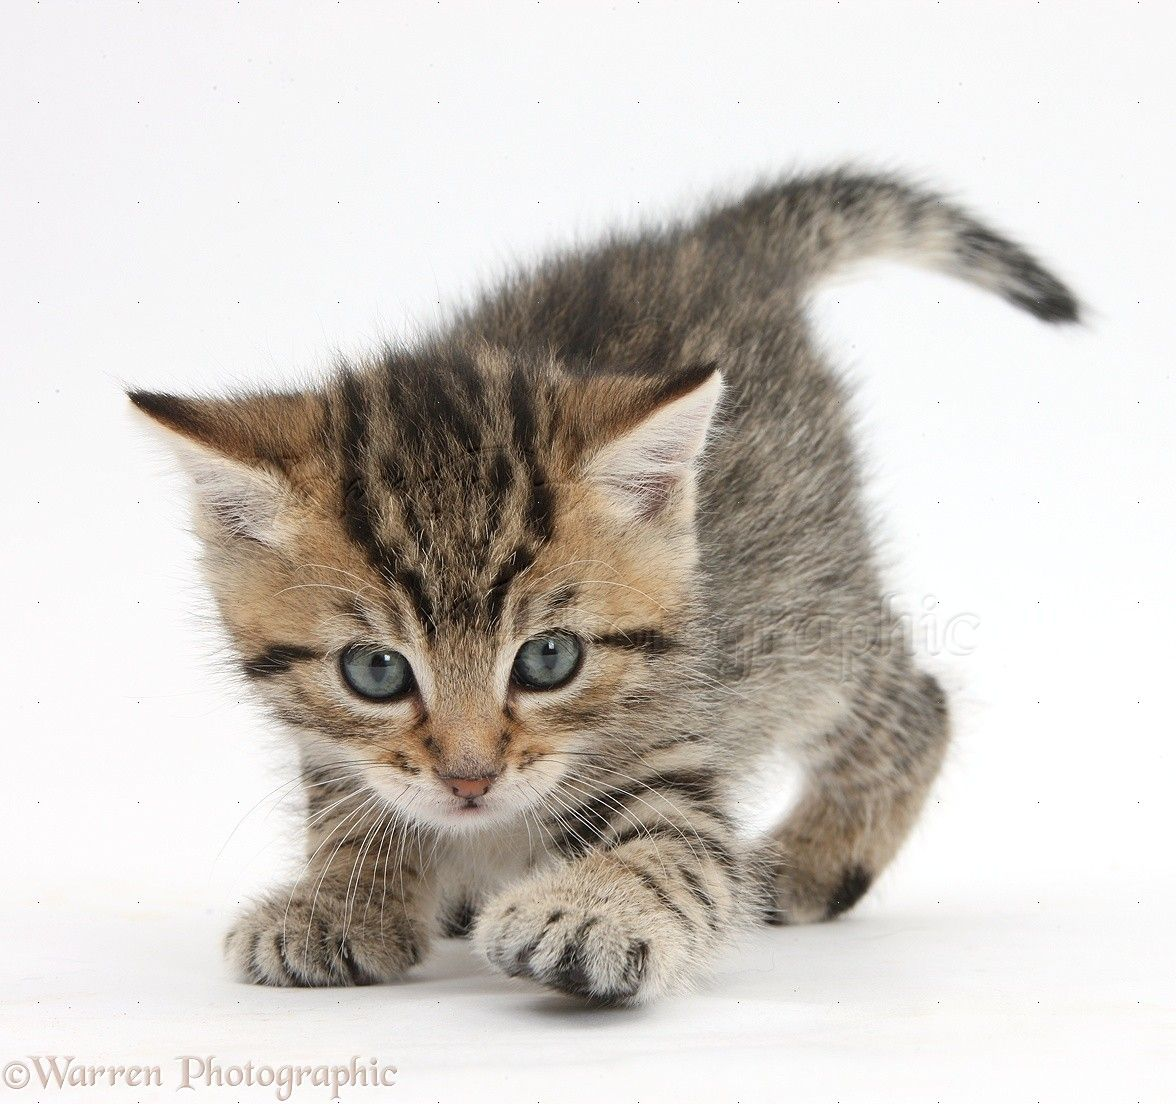 Silver Tabby British Shorthair Kitten Photo Cute Cats And Kittens American Shorthair Cat Kittens Cutest